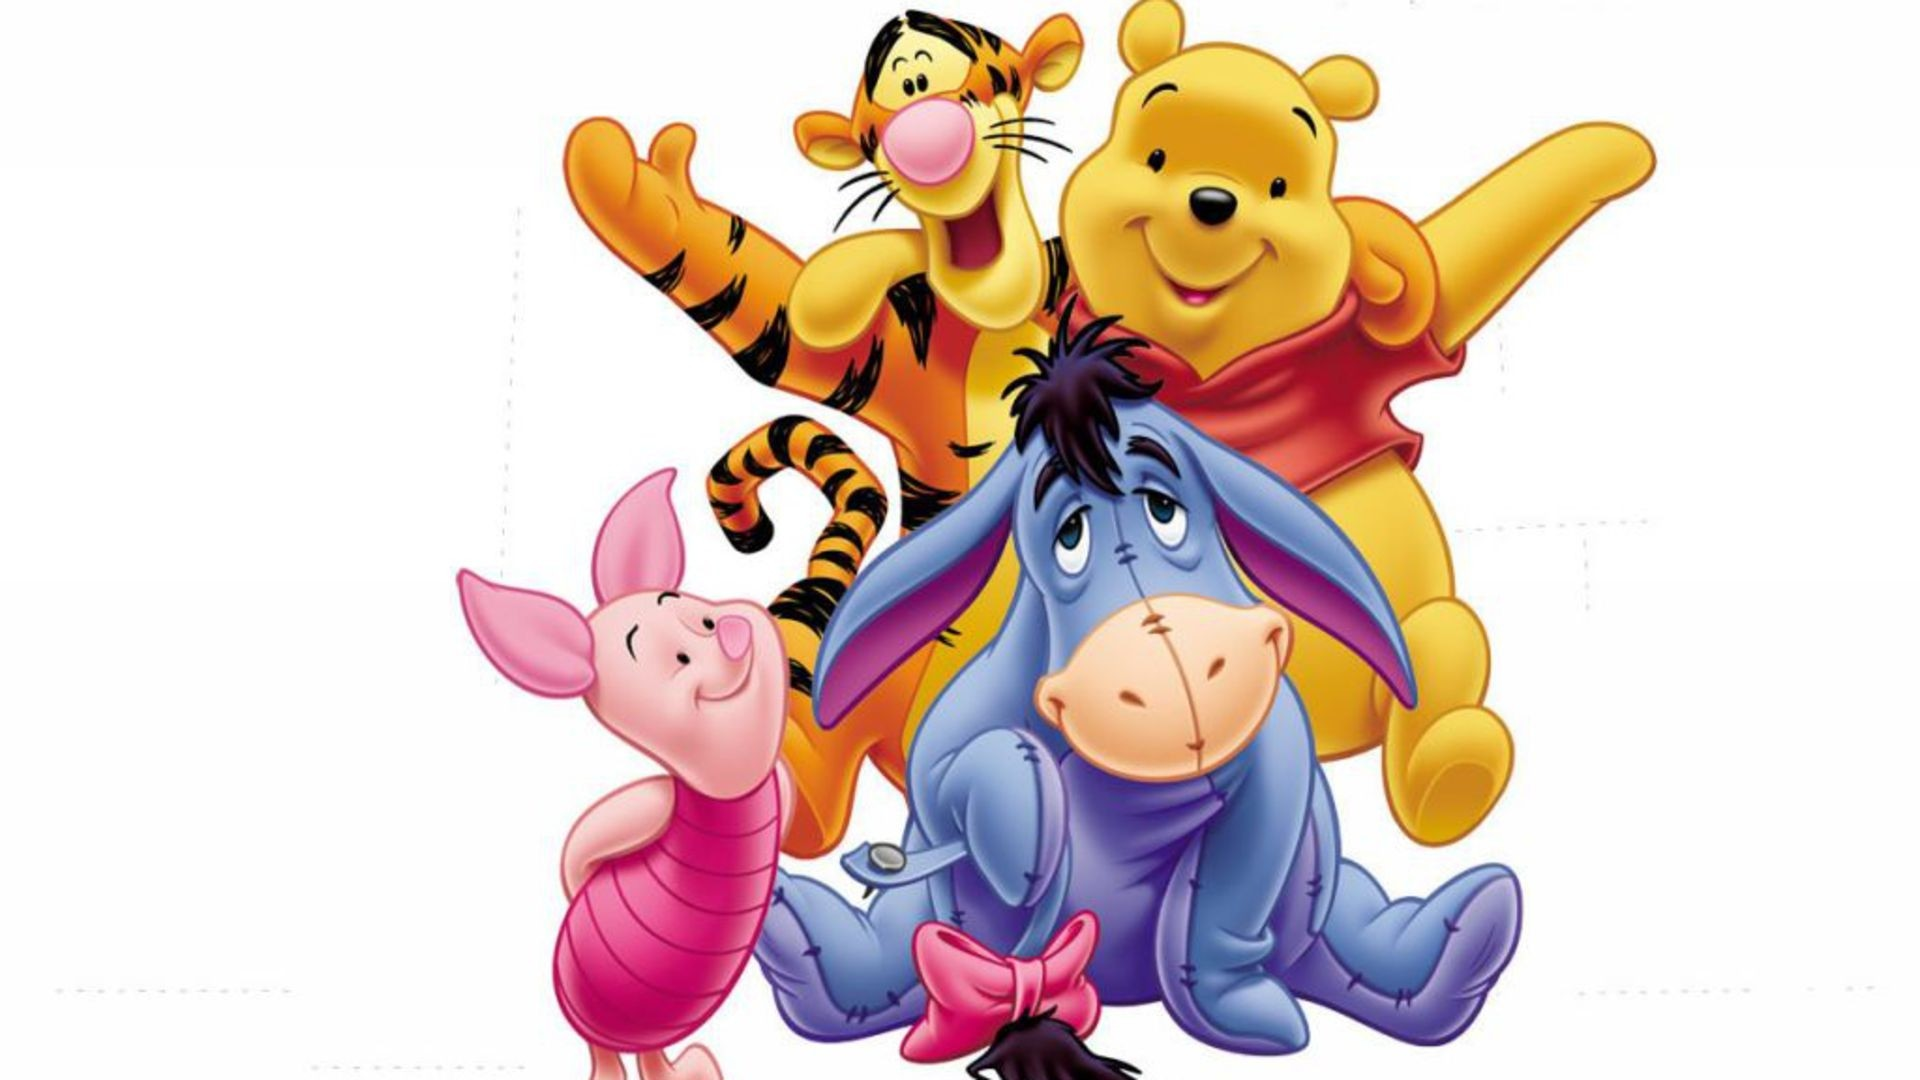 Related Wallpapers from Disney Screensavers. Free Winnie The Pooh Wallpaper